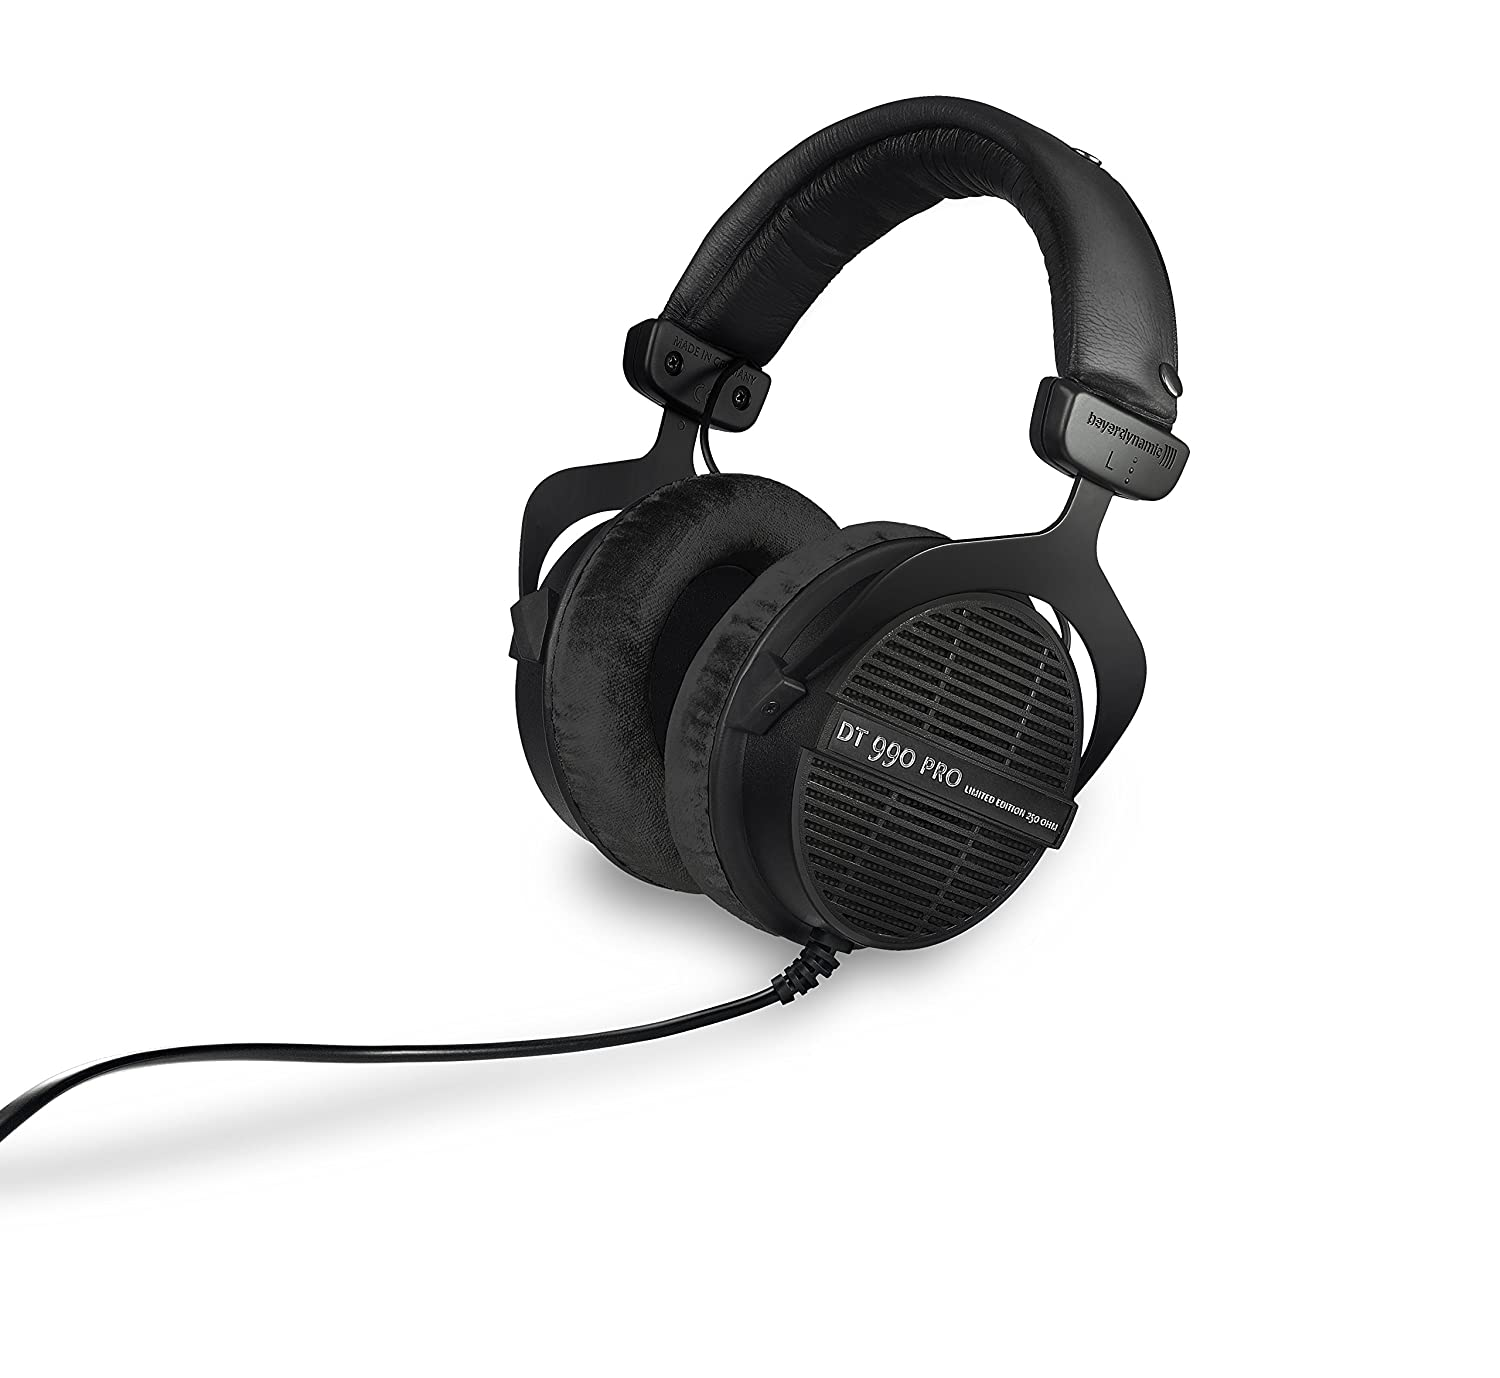 beyerdynamic DT 990 PRO 250 ohm – LIMITED EDITION Black, Straight Cable